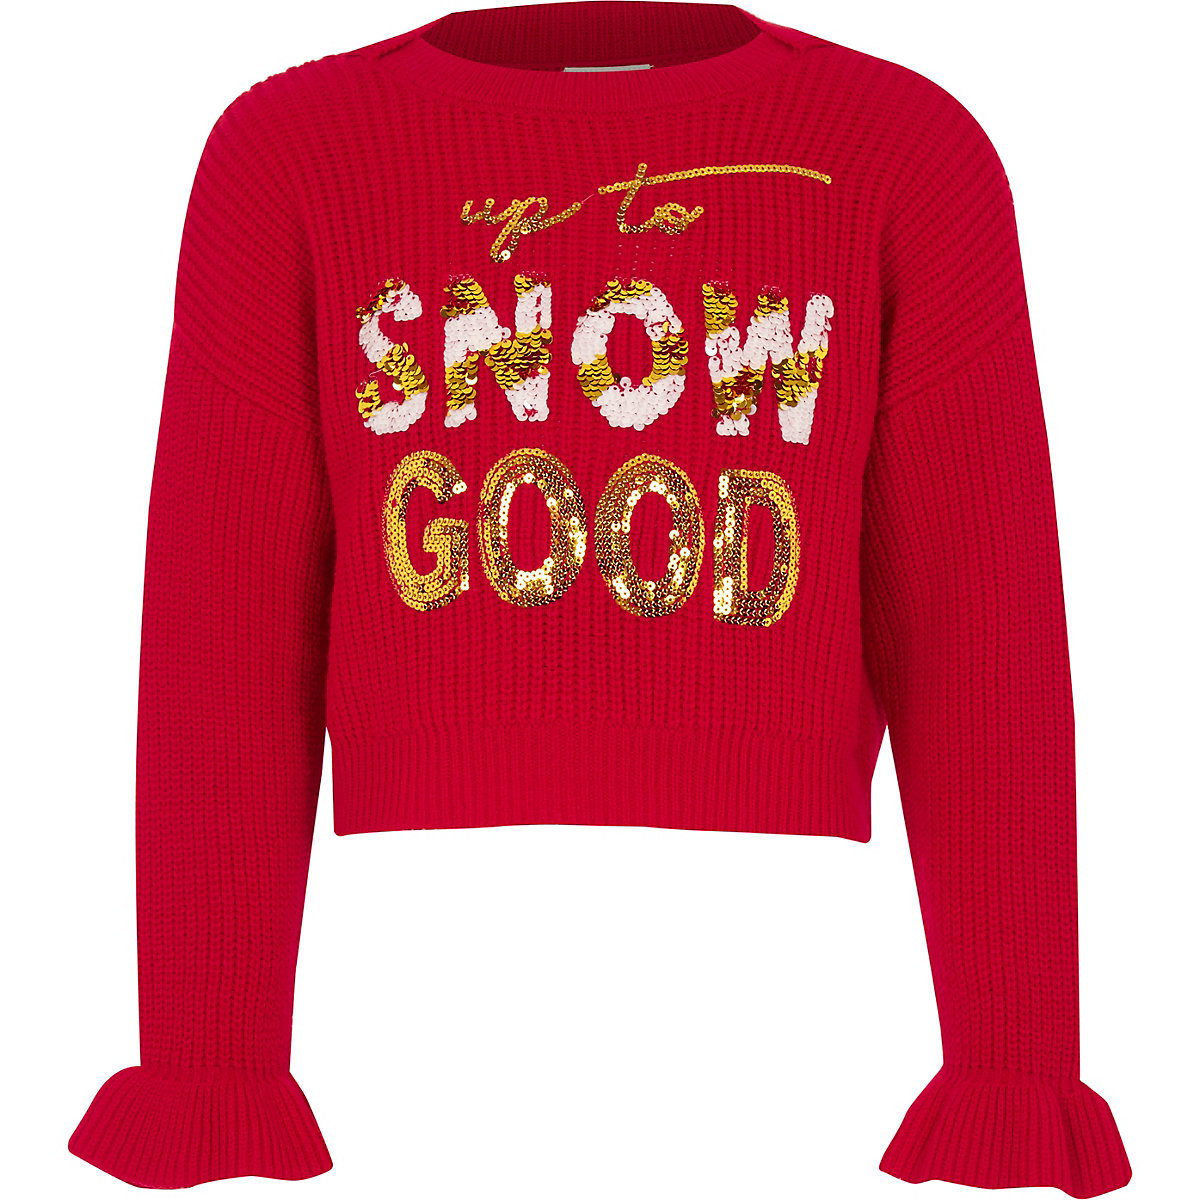 Girls red 'Snow good' Christmas sweater